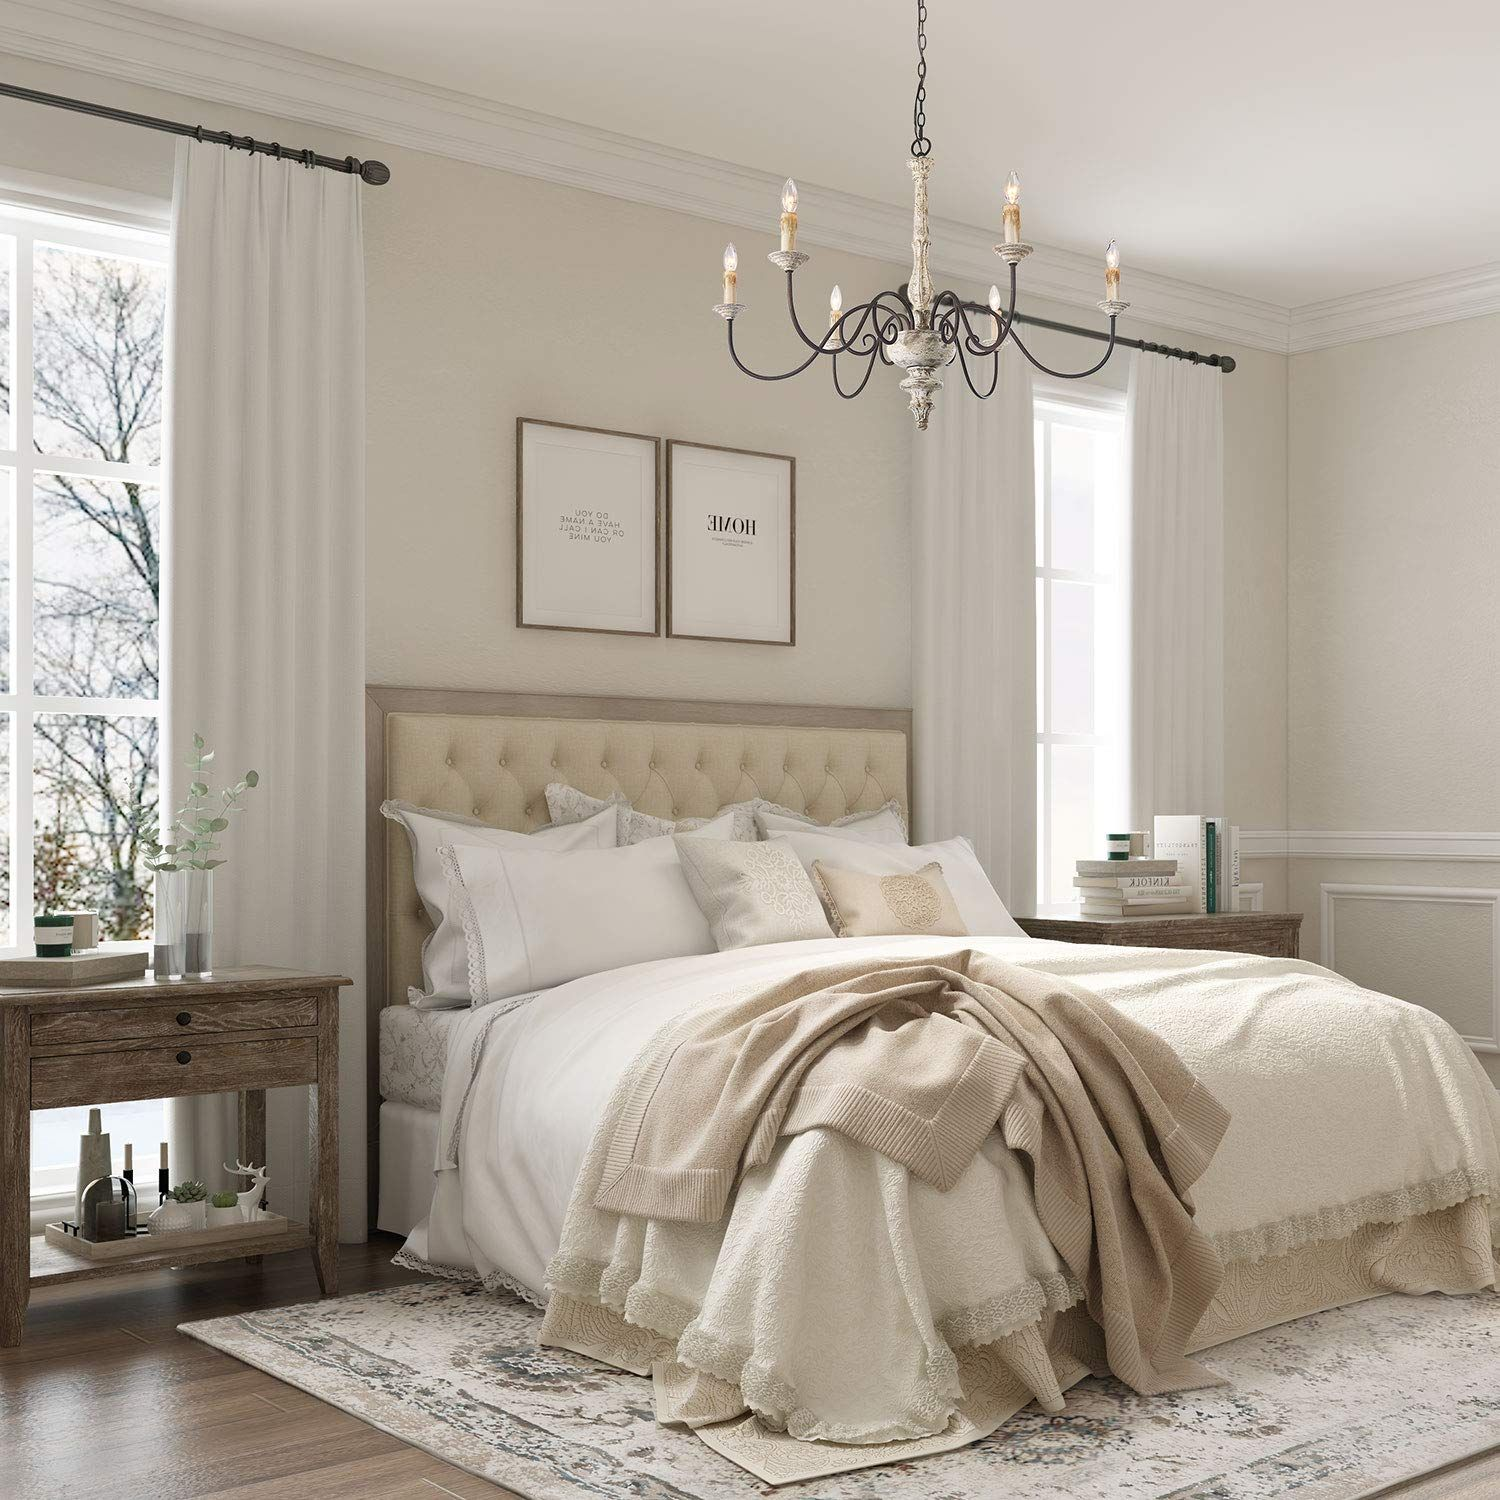 Laluz French Country Chandelier White Distressed Wood Hanging Light Fixtures Living Roo In 2020 Master Bedroom Lighting Master Bedrooms Decor French Country Chandelier